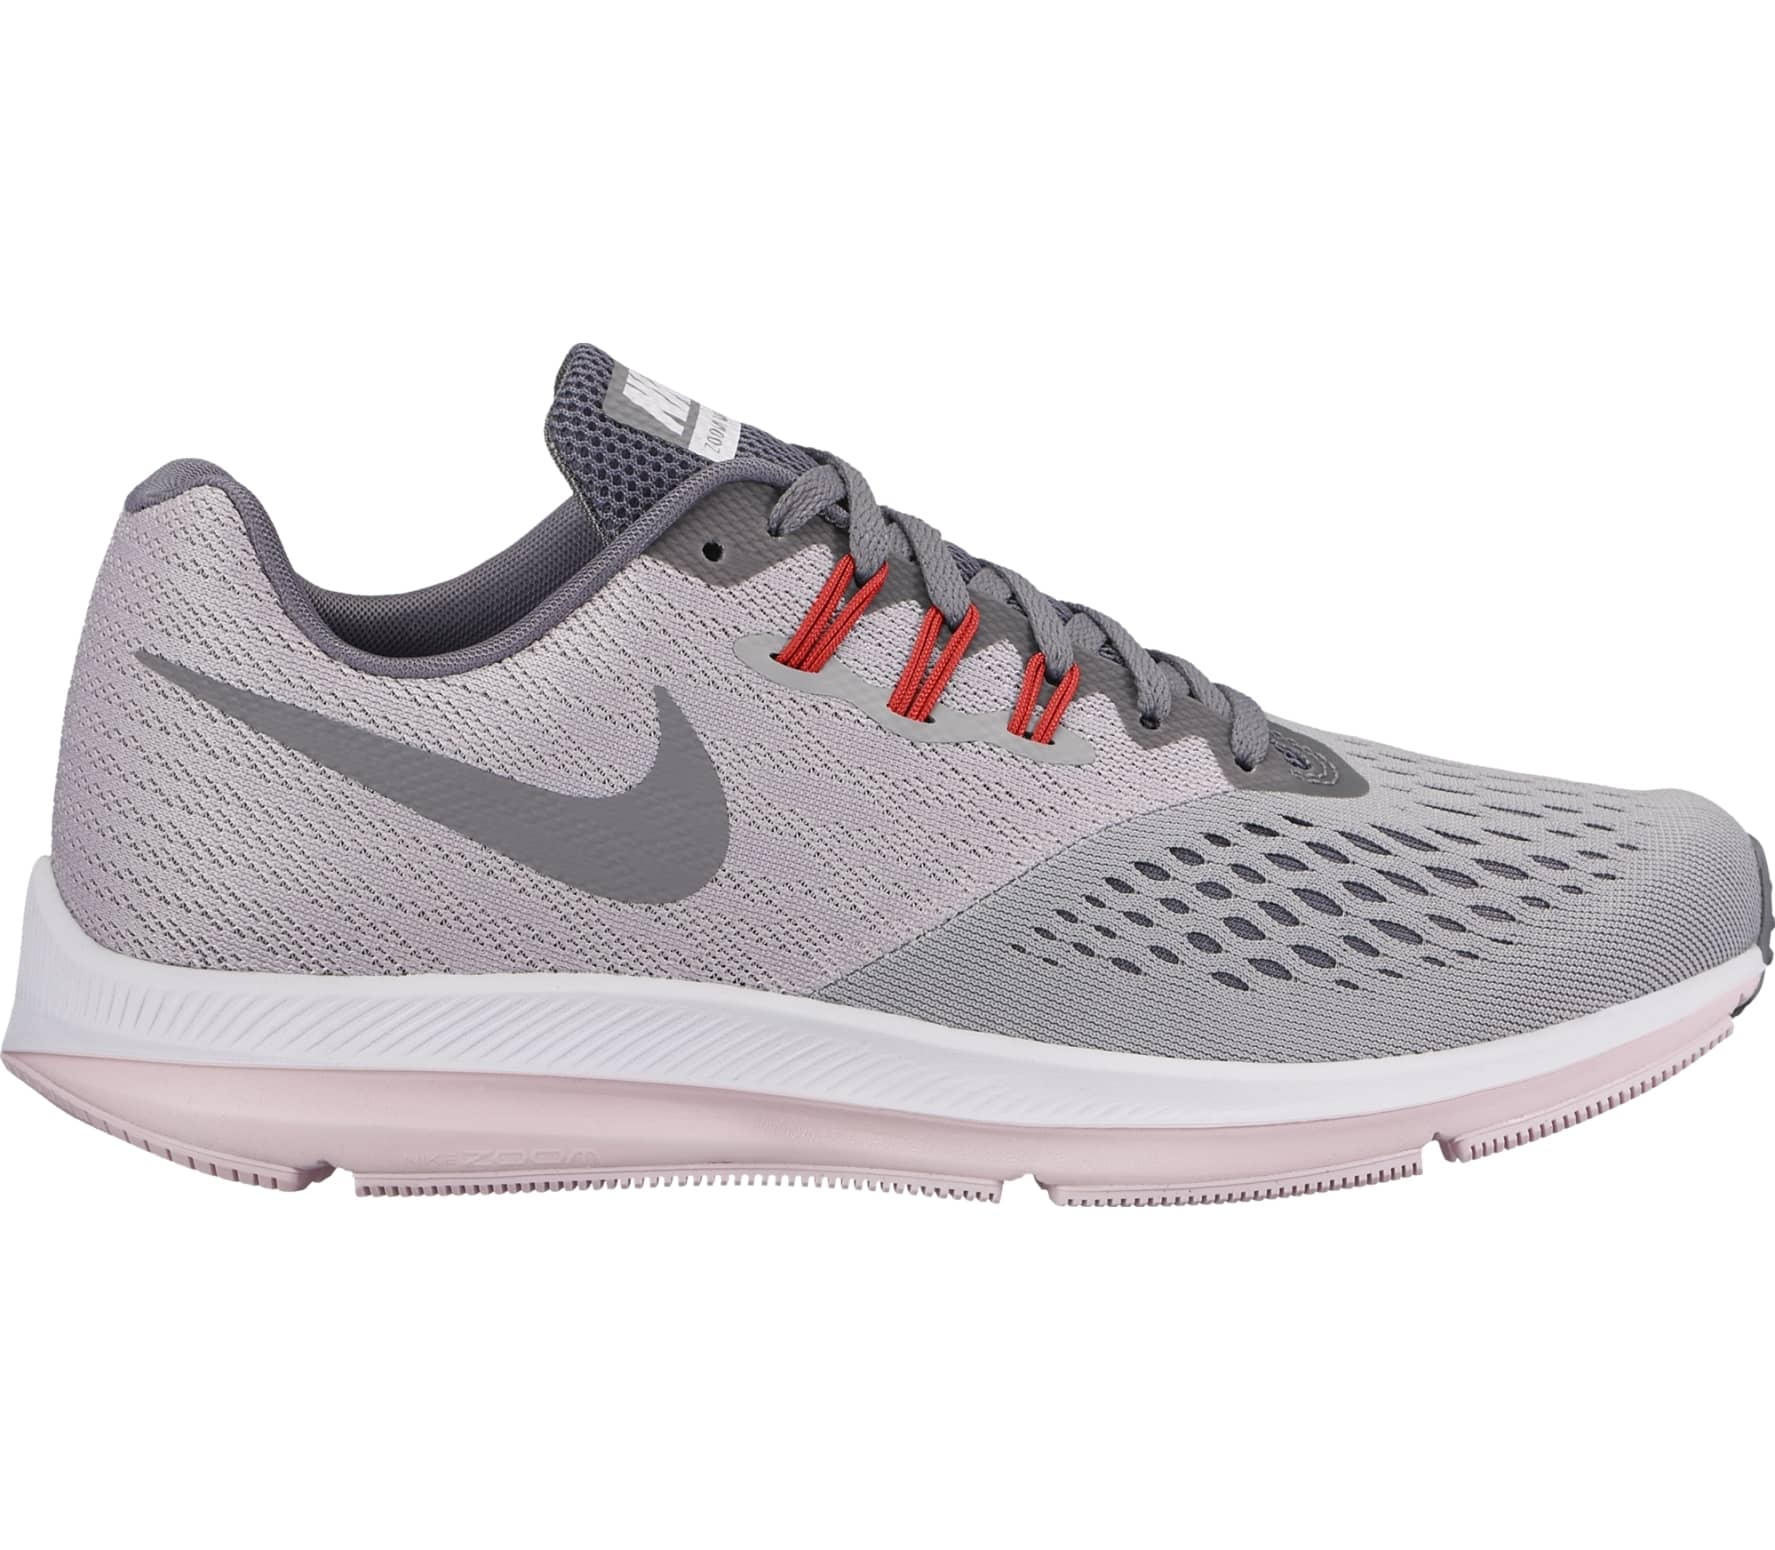 43b2ce6683b40 Nike - Air Zoom Winflo 4 women s running shoes (light grey pink ...